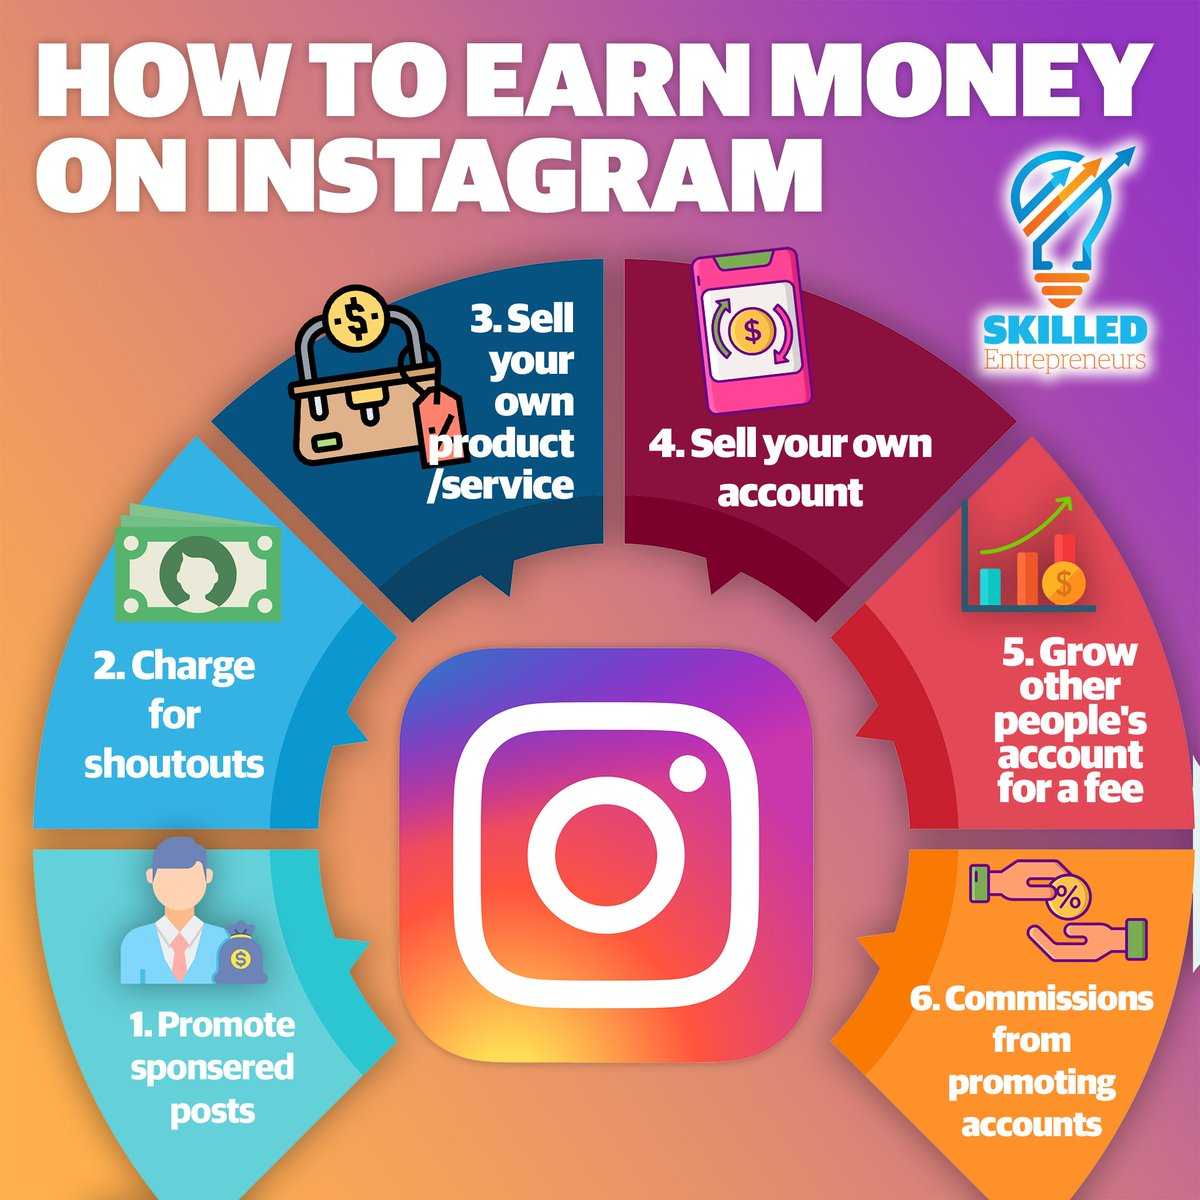 How to earn money on Instagram  1) Promote sponsored posts 2) Charge for shoutouts 3) Sell your own product/service 4) Sell your own account 5) Grow other people's account for a fee 6) Commissions from promoting accounts  #grindout #grow #grind #focus #strength #makingmoney